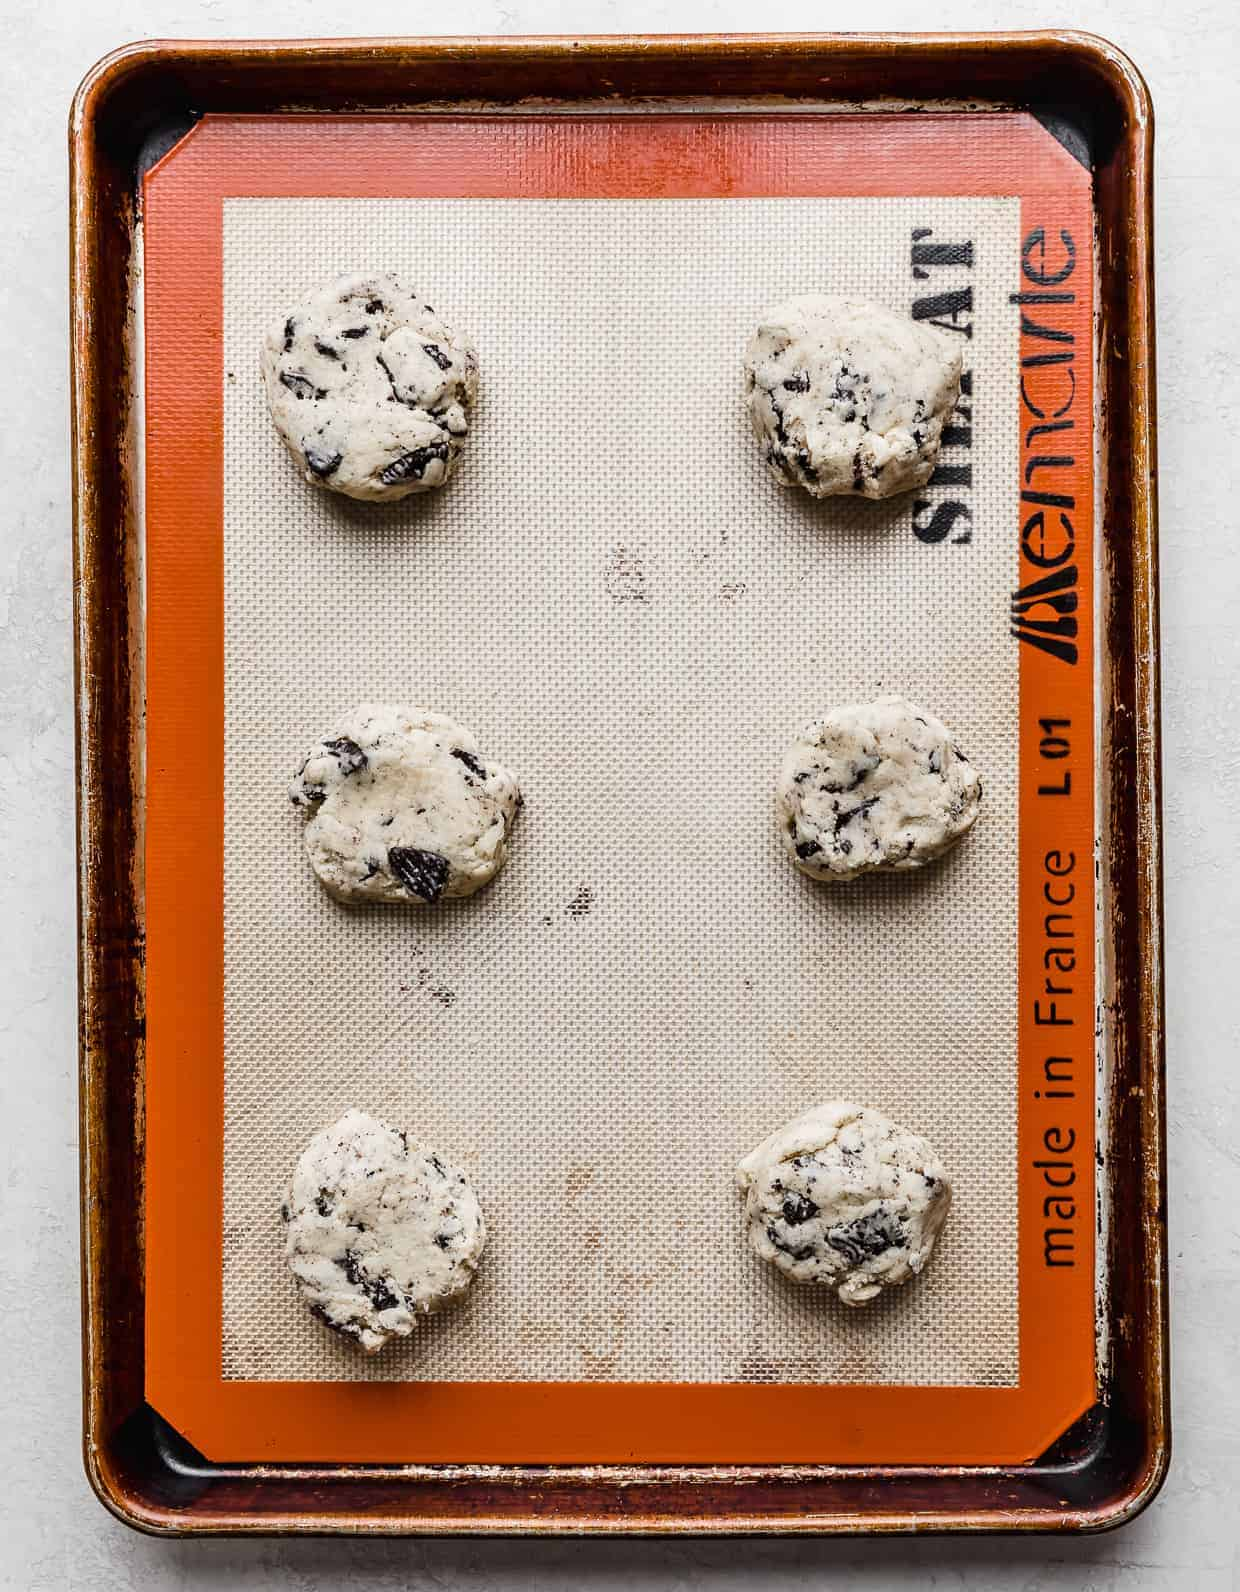 Six cookies and cream cookie dough balls on a baking sheet.